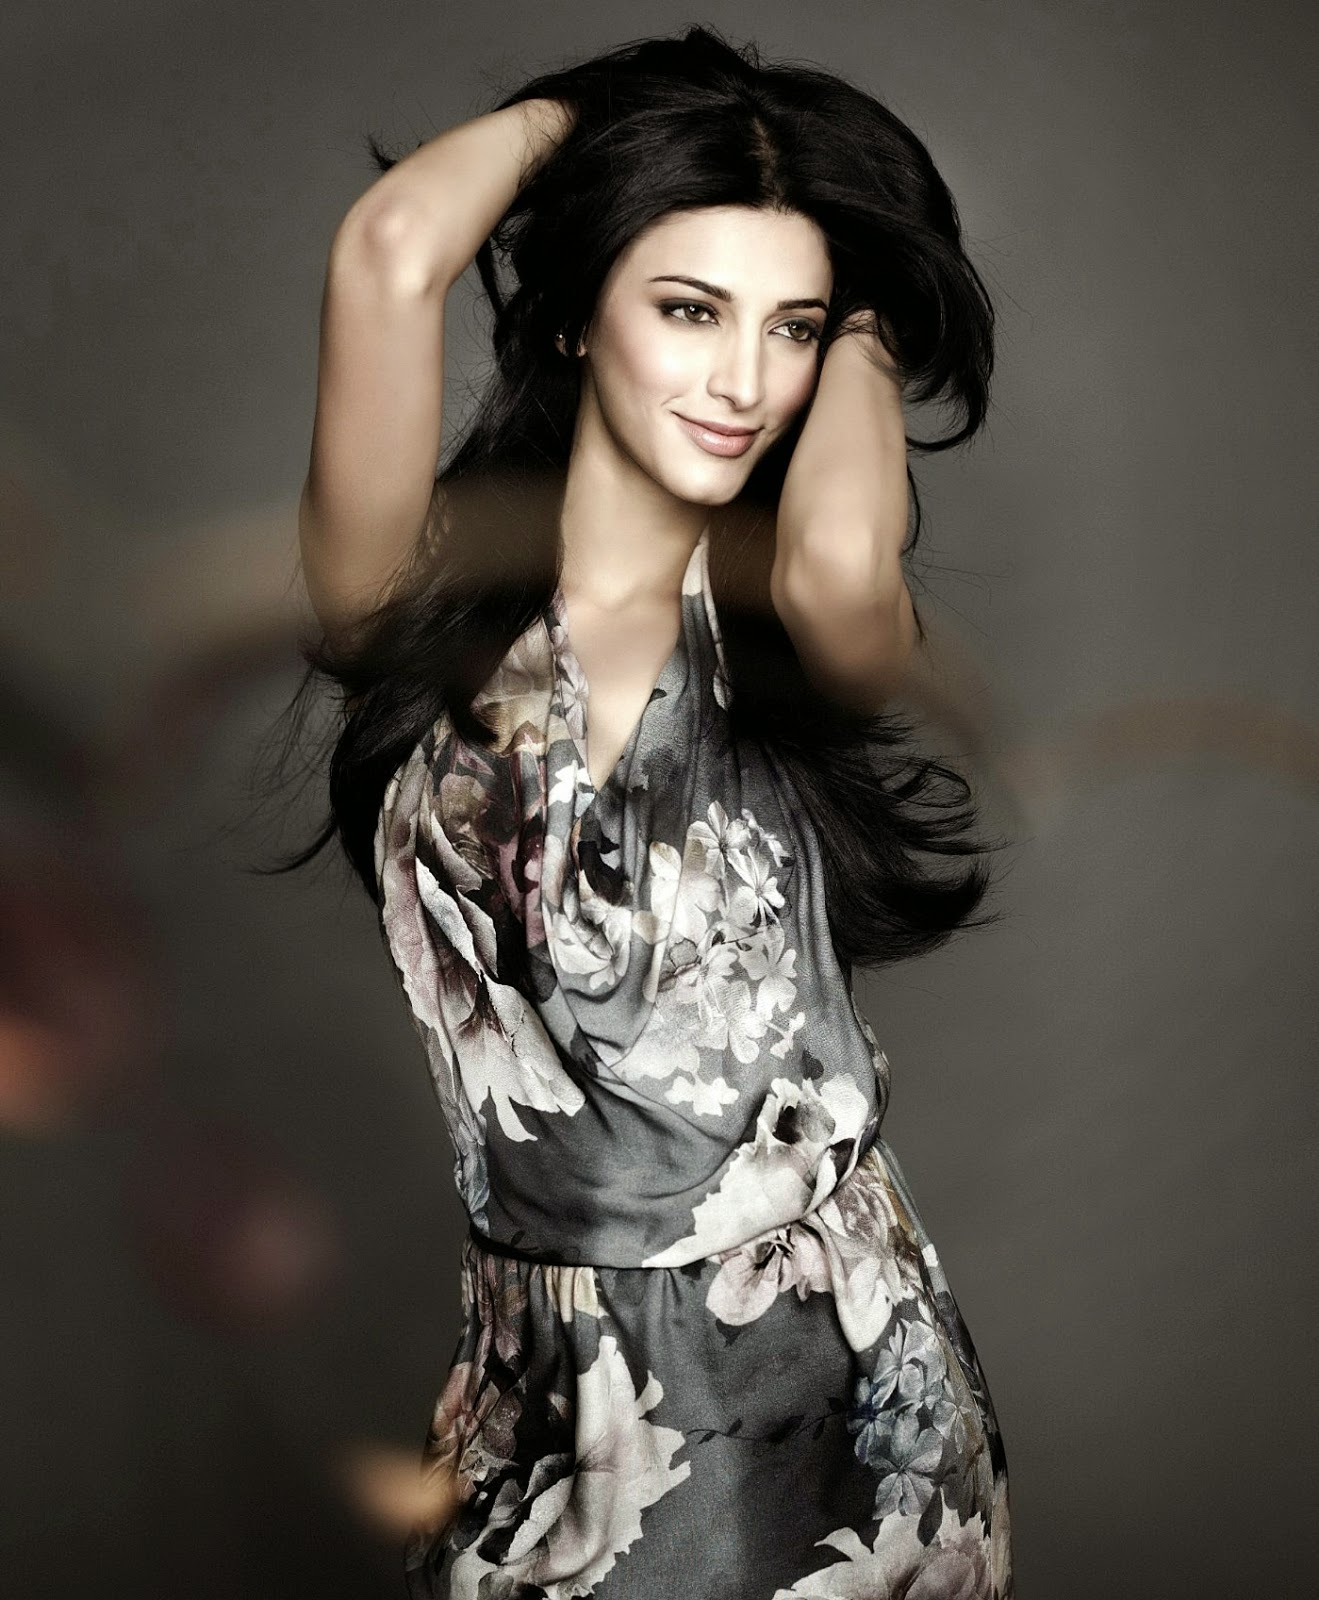 shruti hassan hot and spicy hd wallpaper